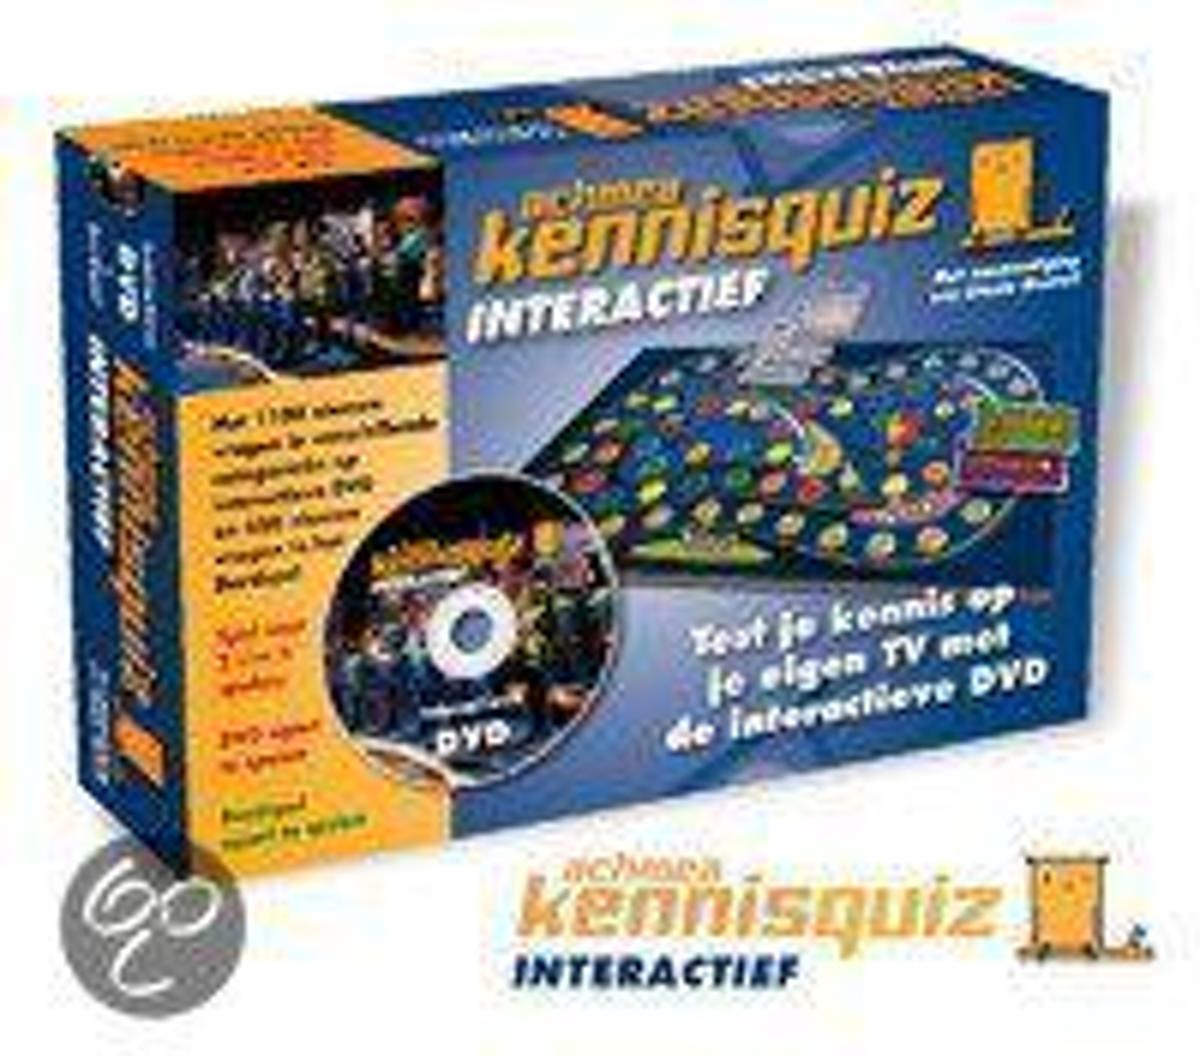 Achmea Kennisquiz DVD Bordspel